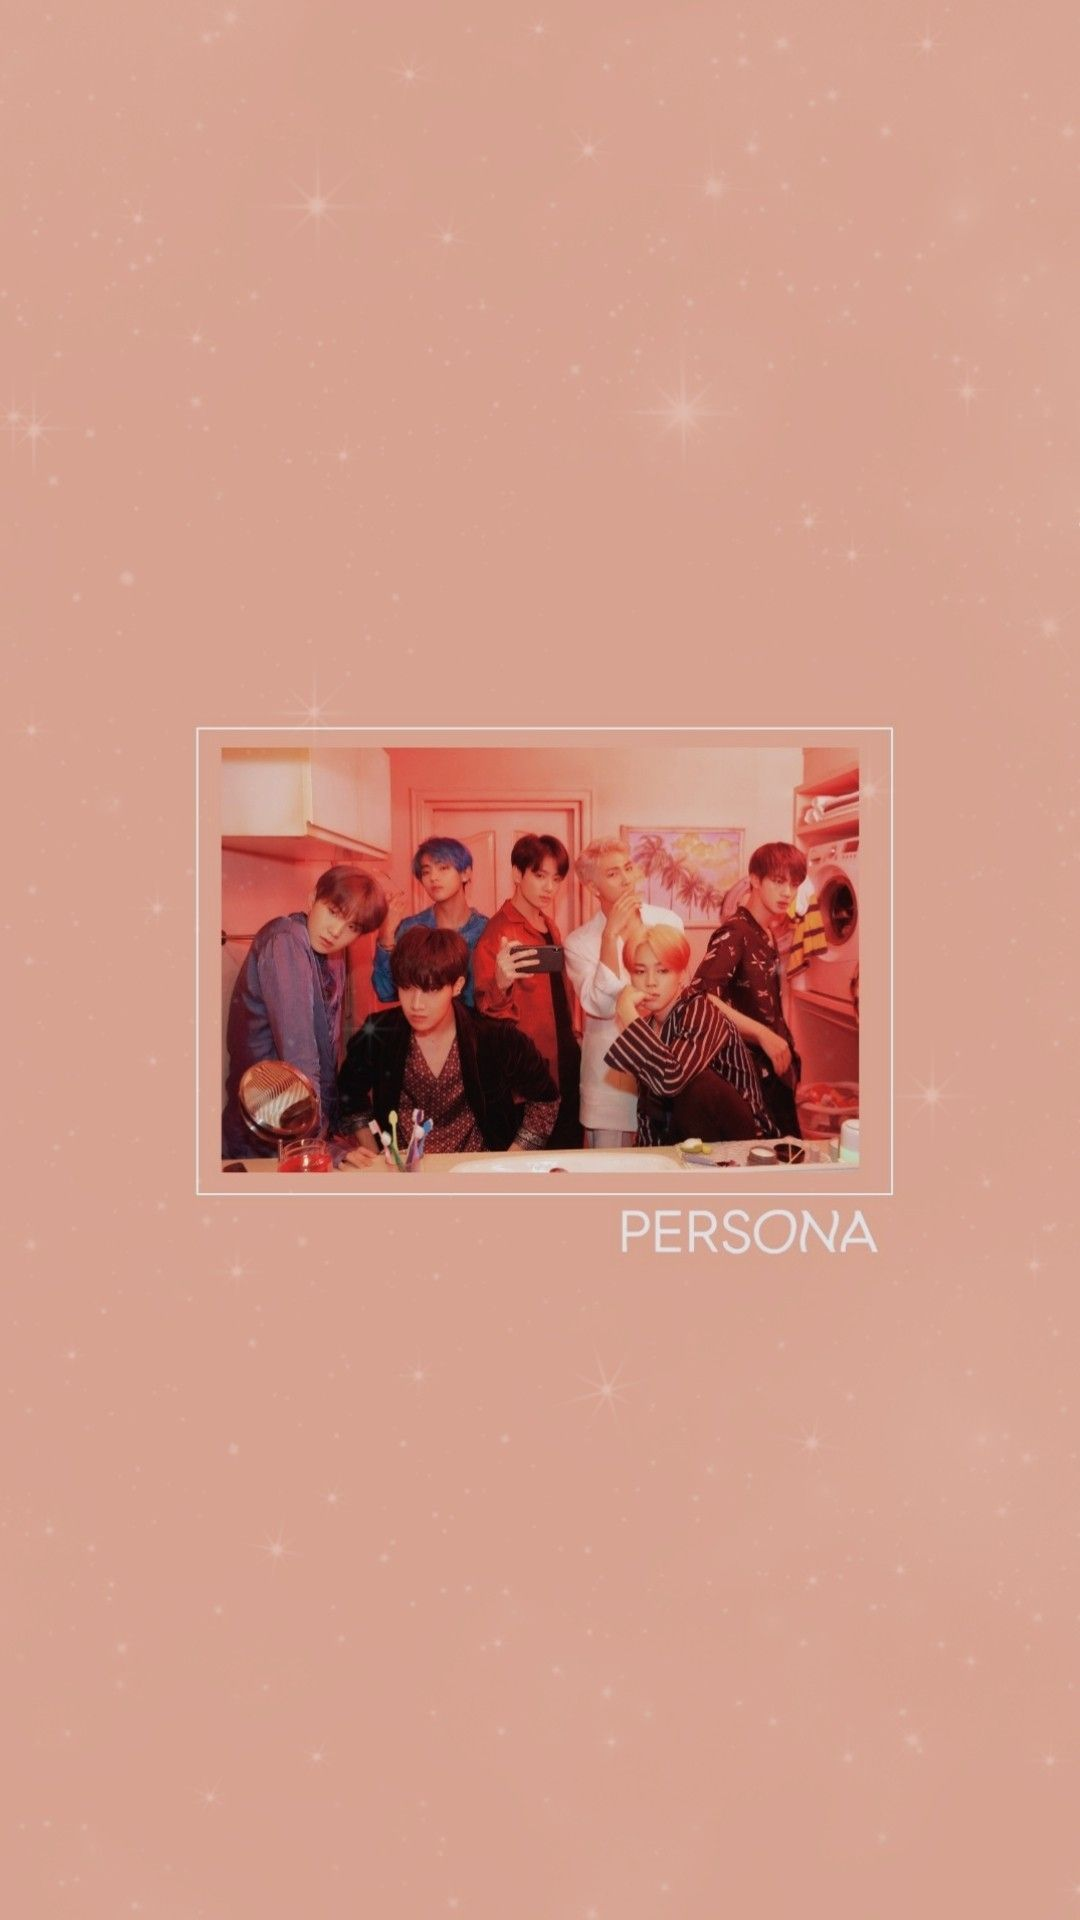 Bts Aesthetic Wallpaper For Mobile Phone Tablet Desktop Computer And Other Devices Hd And 4k Bts Wallpaper Aesthetic Wallpapers Bts Aesthetic Pictures Bts wallpaper tablet hd